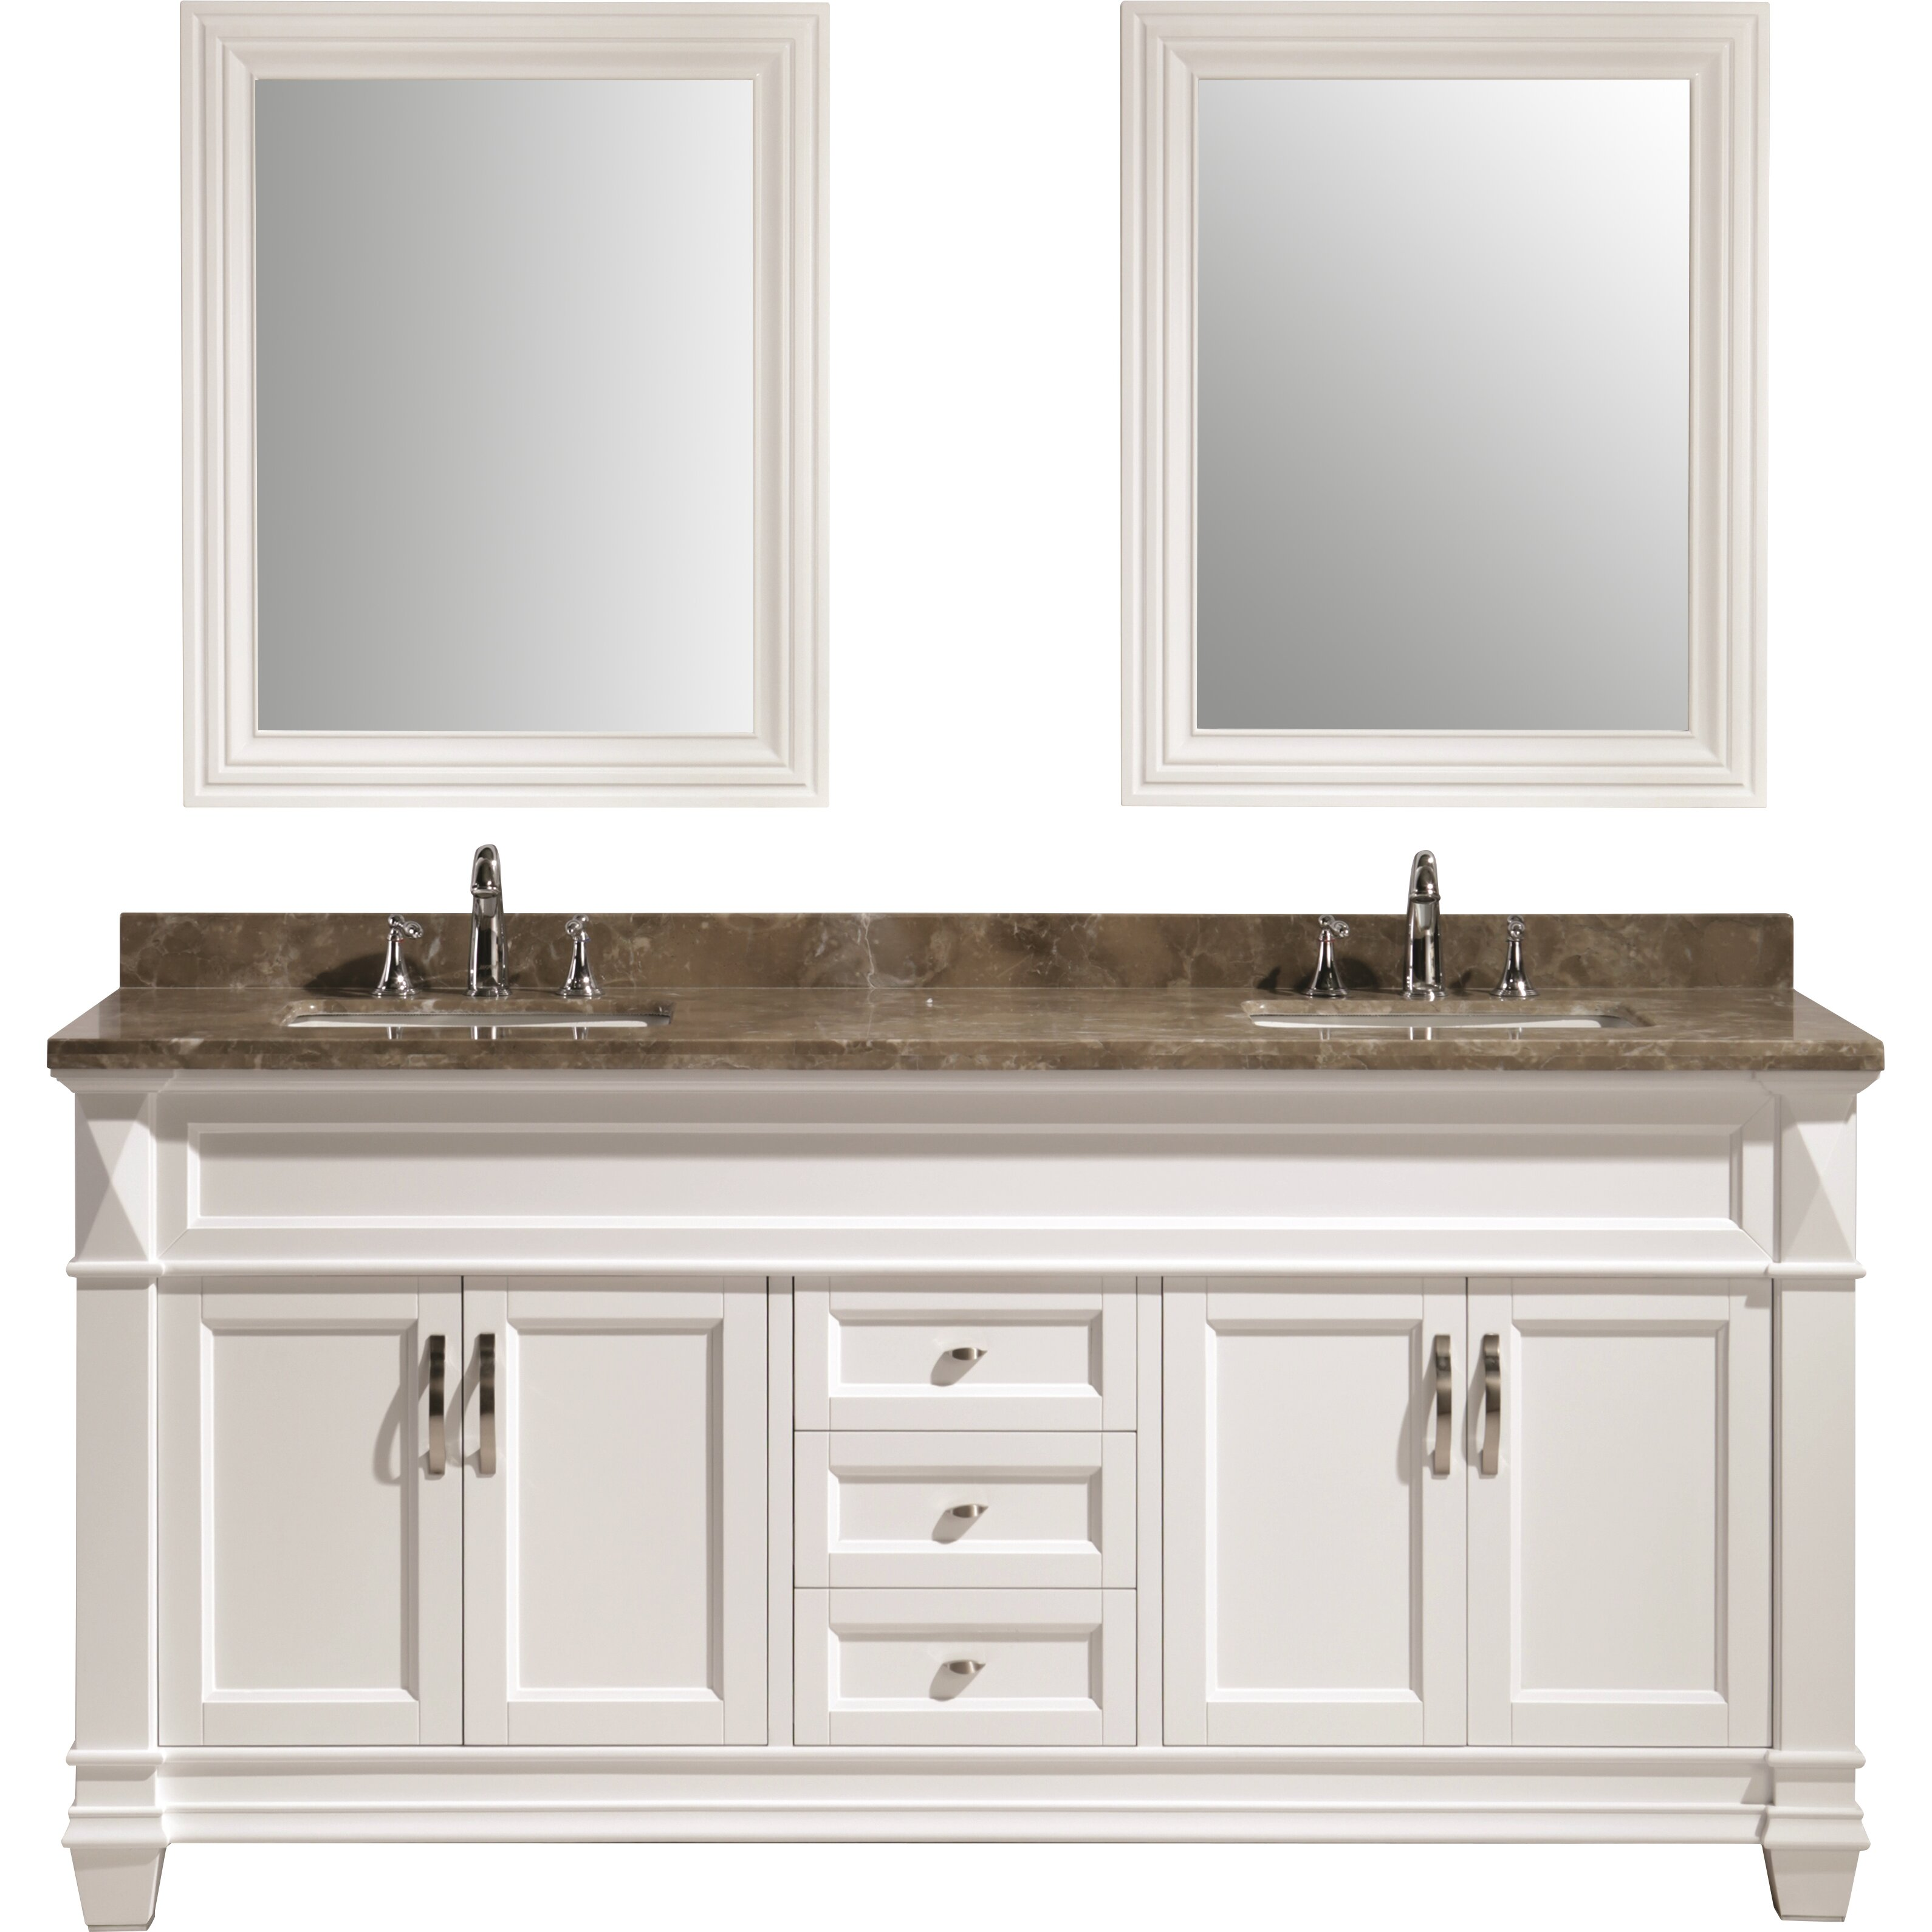 Book Of Bathroom Mirrors For Double Vanity In Uk By James